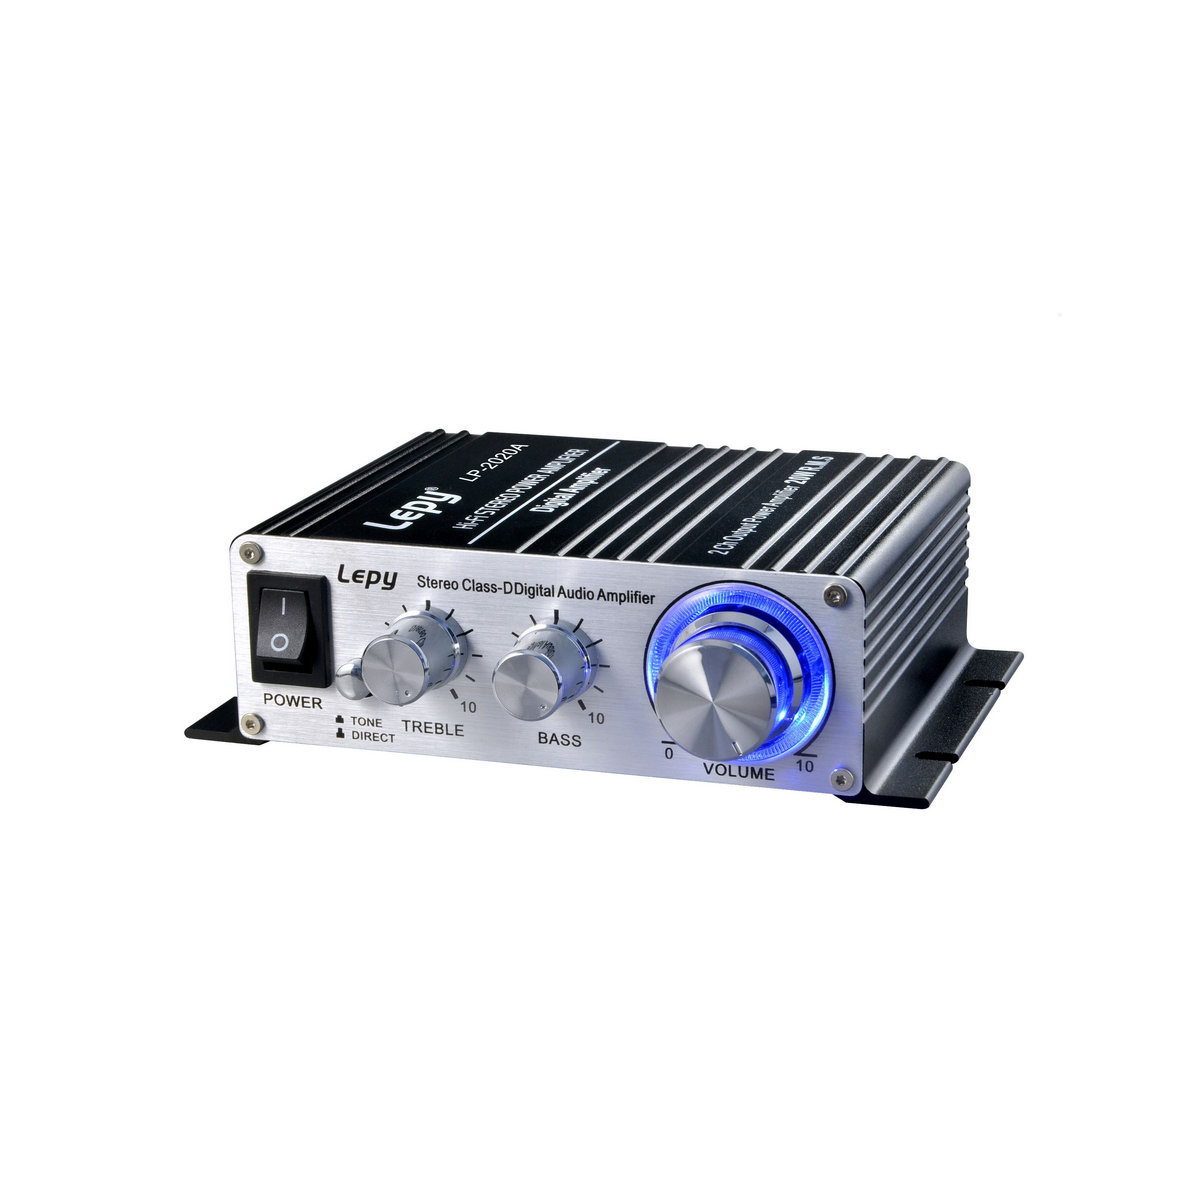 LP-2020A HIFI <font><b>D</b></font> <font><b>class</b></font> Digital small computer DVD mobile phone Mini <font><b>Power</b></font> amplifier with <font><b>Power</b></font> <font><b>supply</b></font> and audio cable image